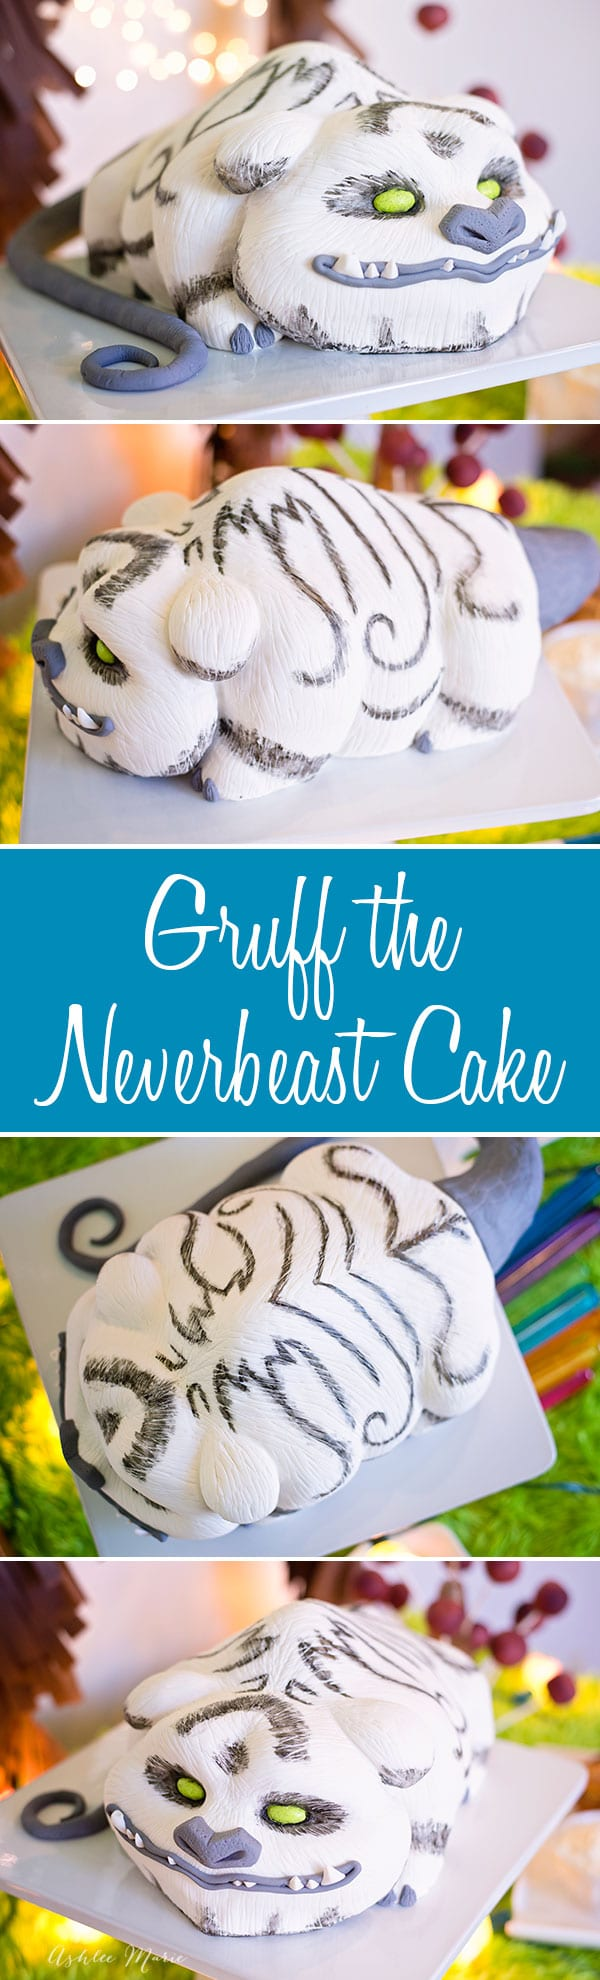 My hand carved and painted Neverbeast cake with a full video tutorial